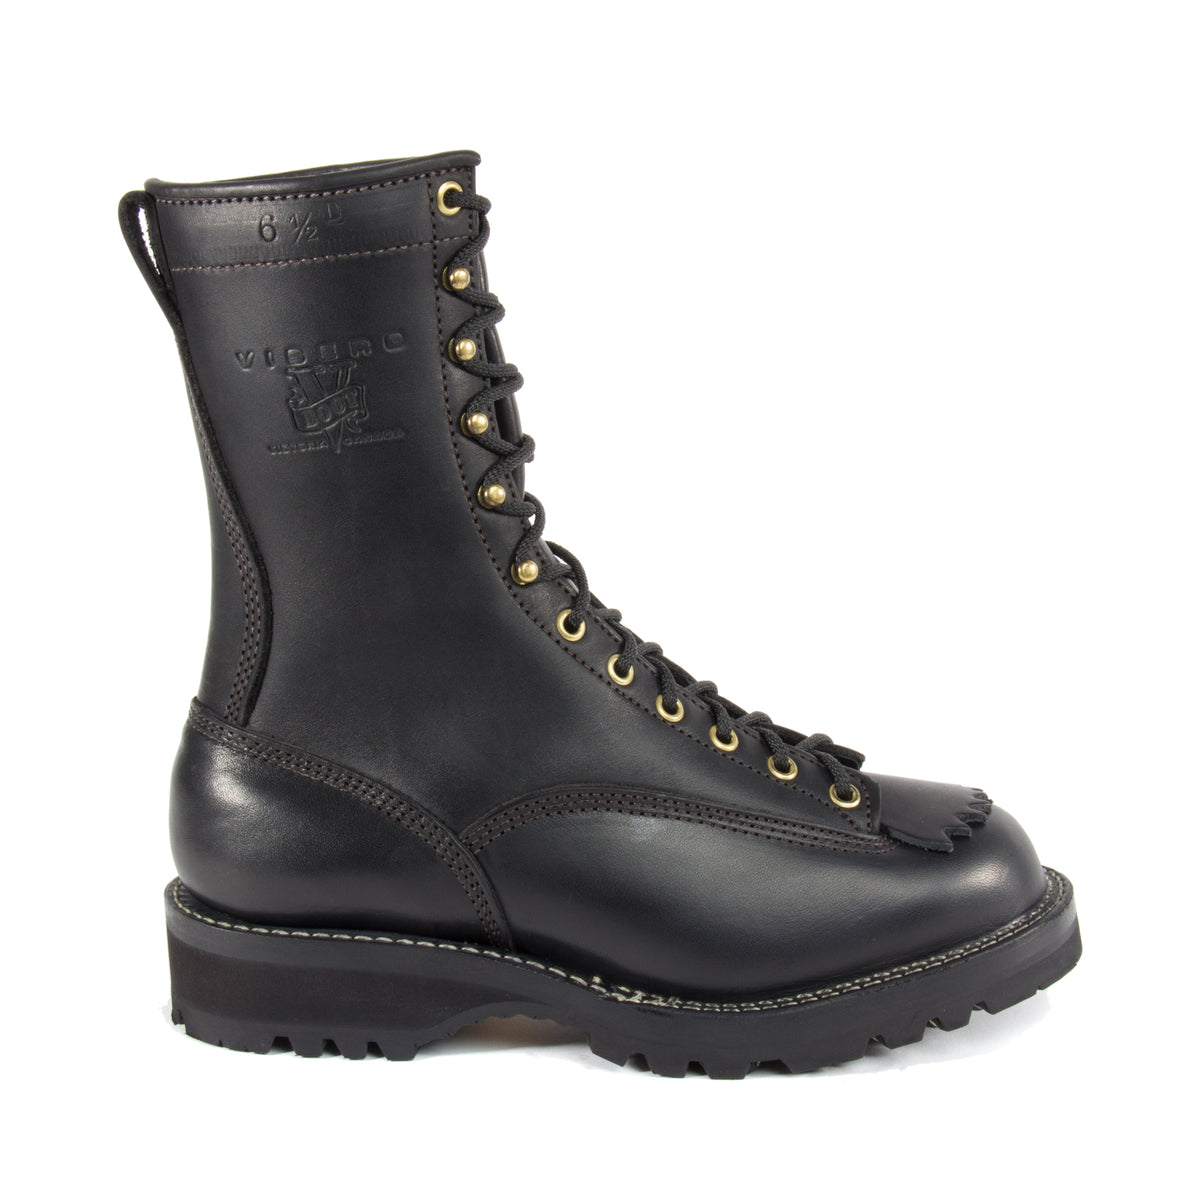 Viberg Rigger Work Boots With Sierra Sole Workboot